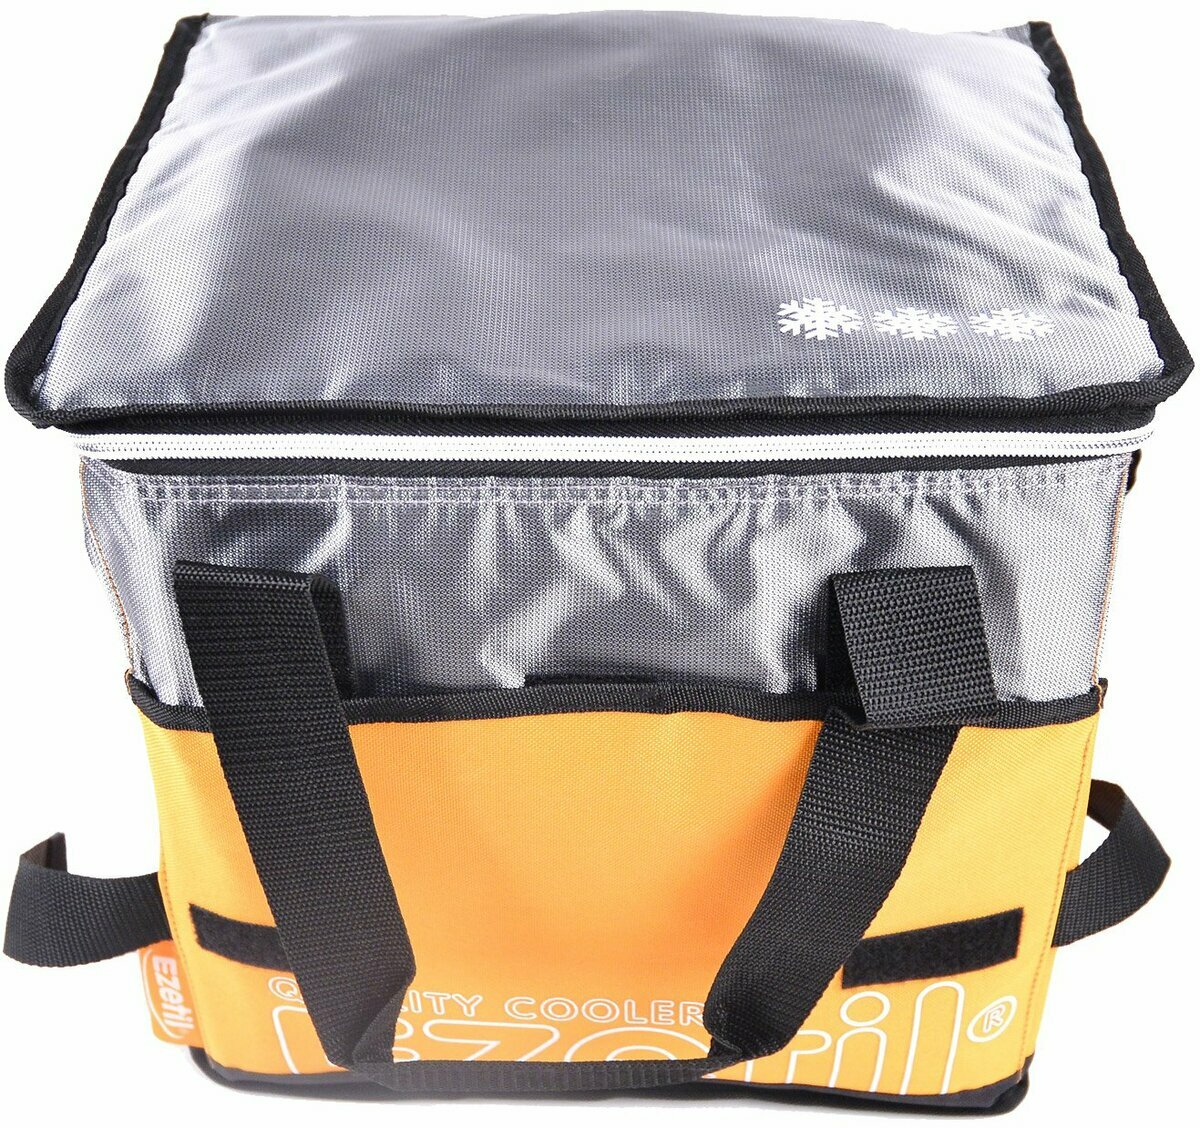 Сумка-холодильник Ezetil KC Freestyle 37L в Тольятти